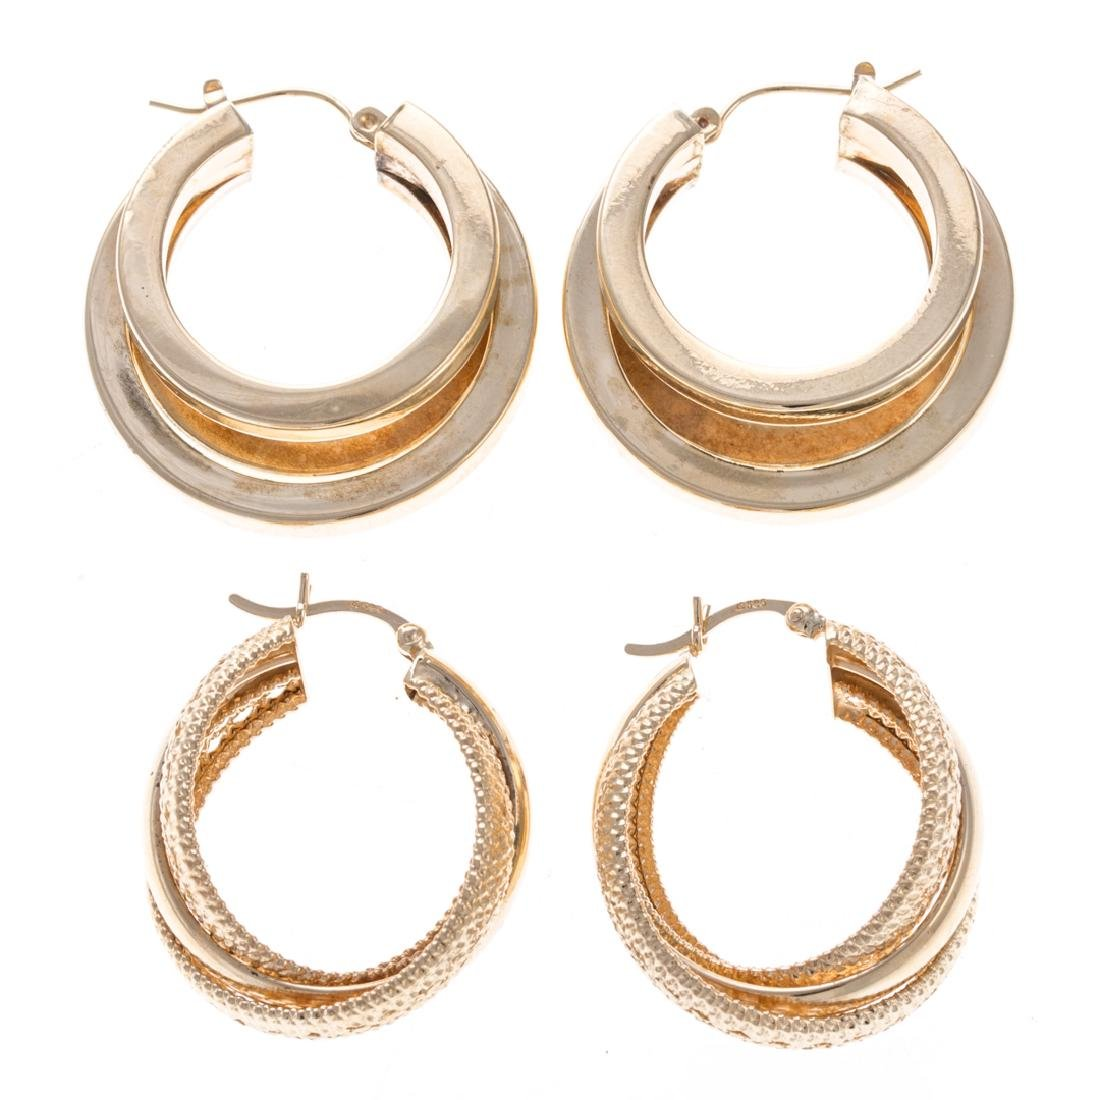 Two Pair of Lady's Wide 14K Hoop Earrings